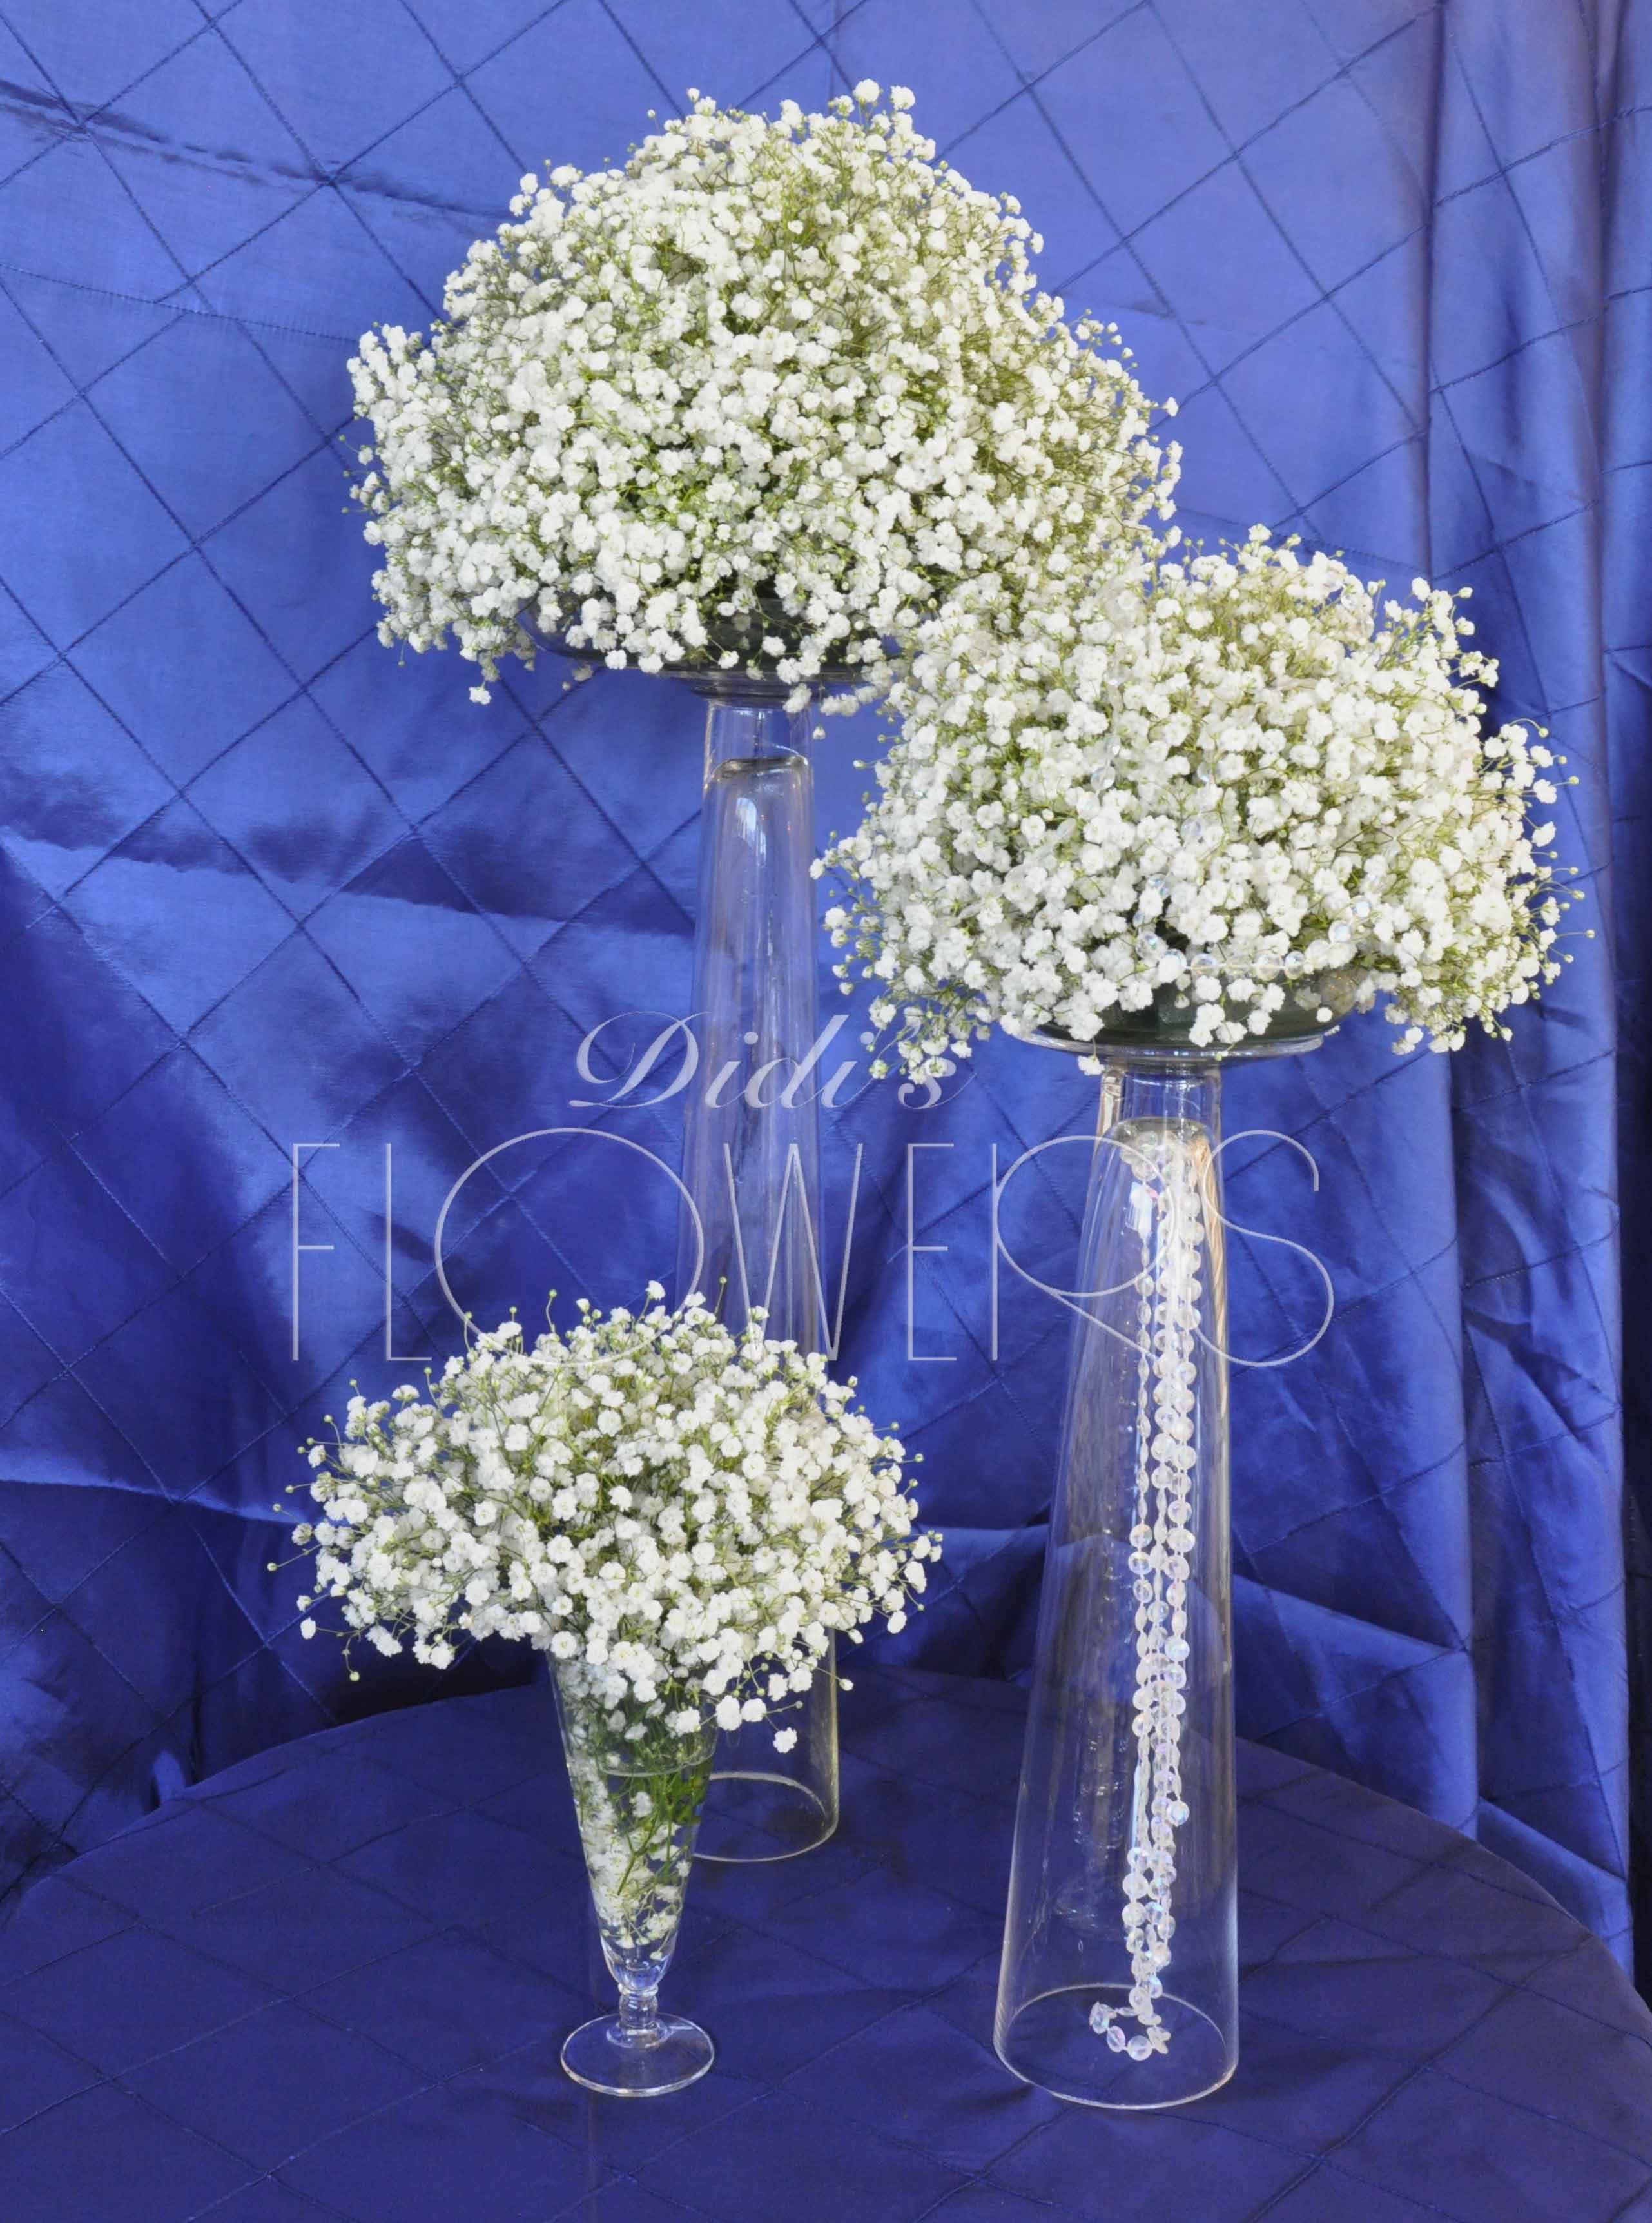 •Baby's breath is a group of perennial and annual plants